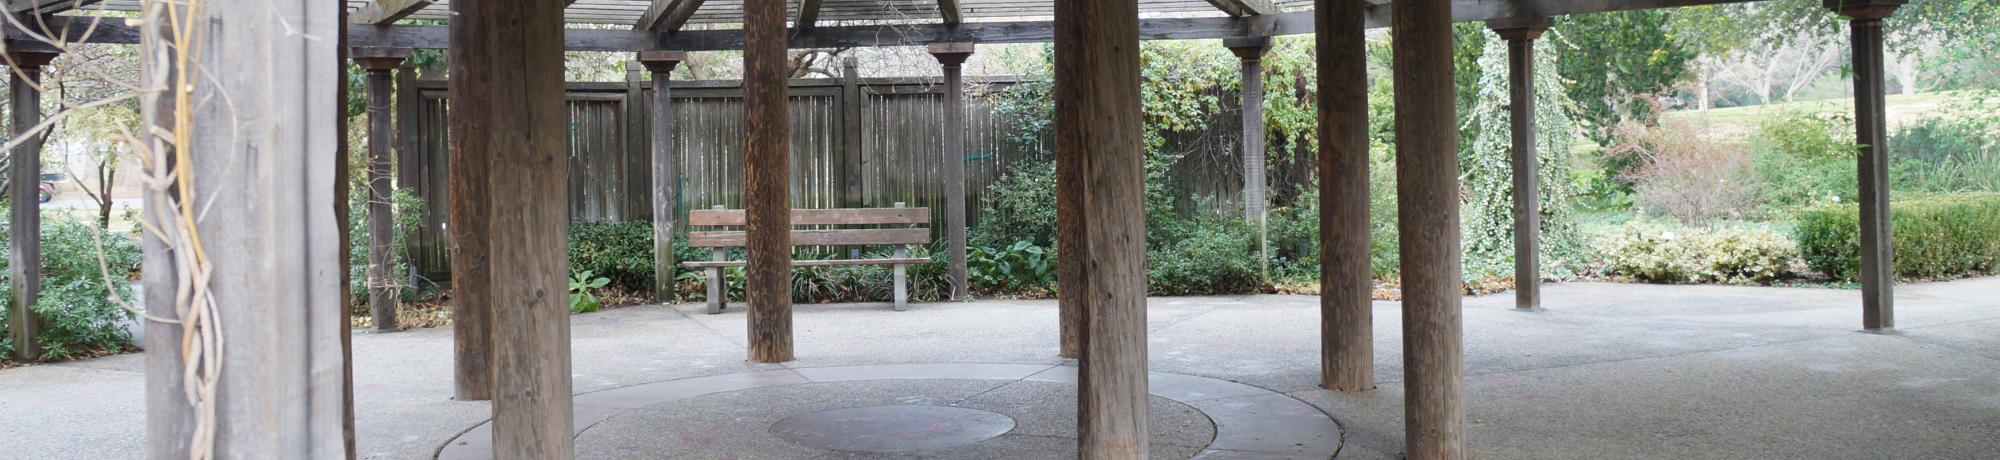 Image of the UC Davis Arboretum Gazebo.